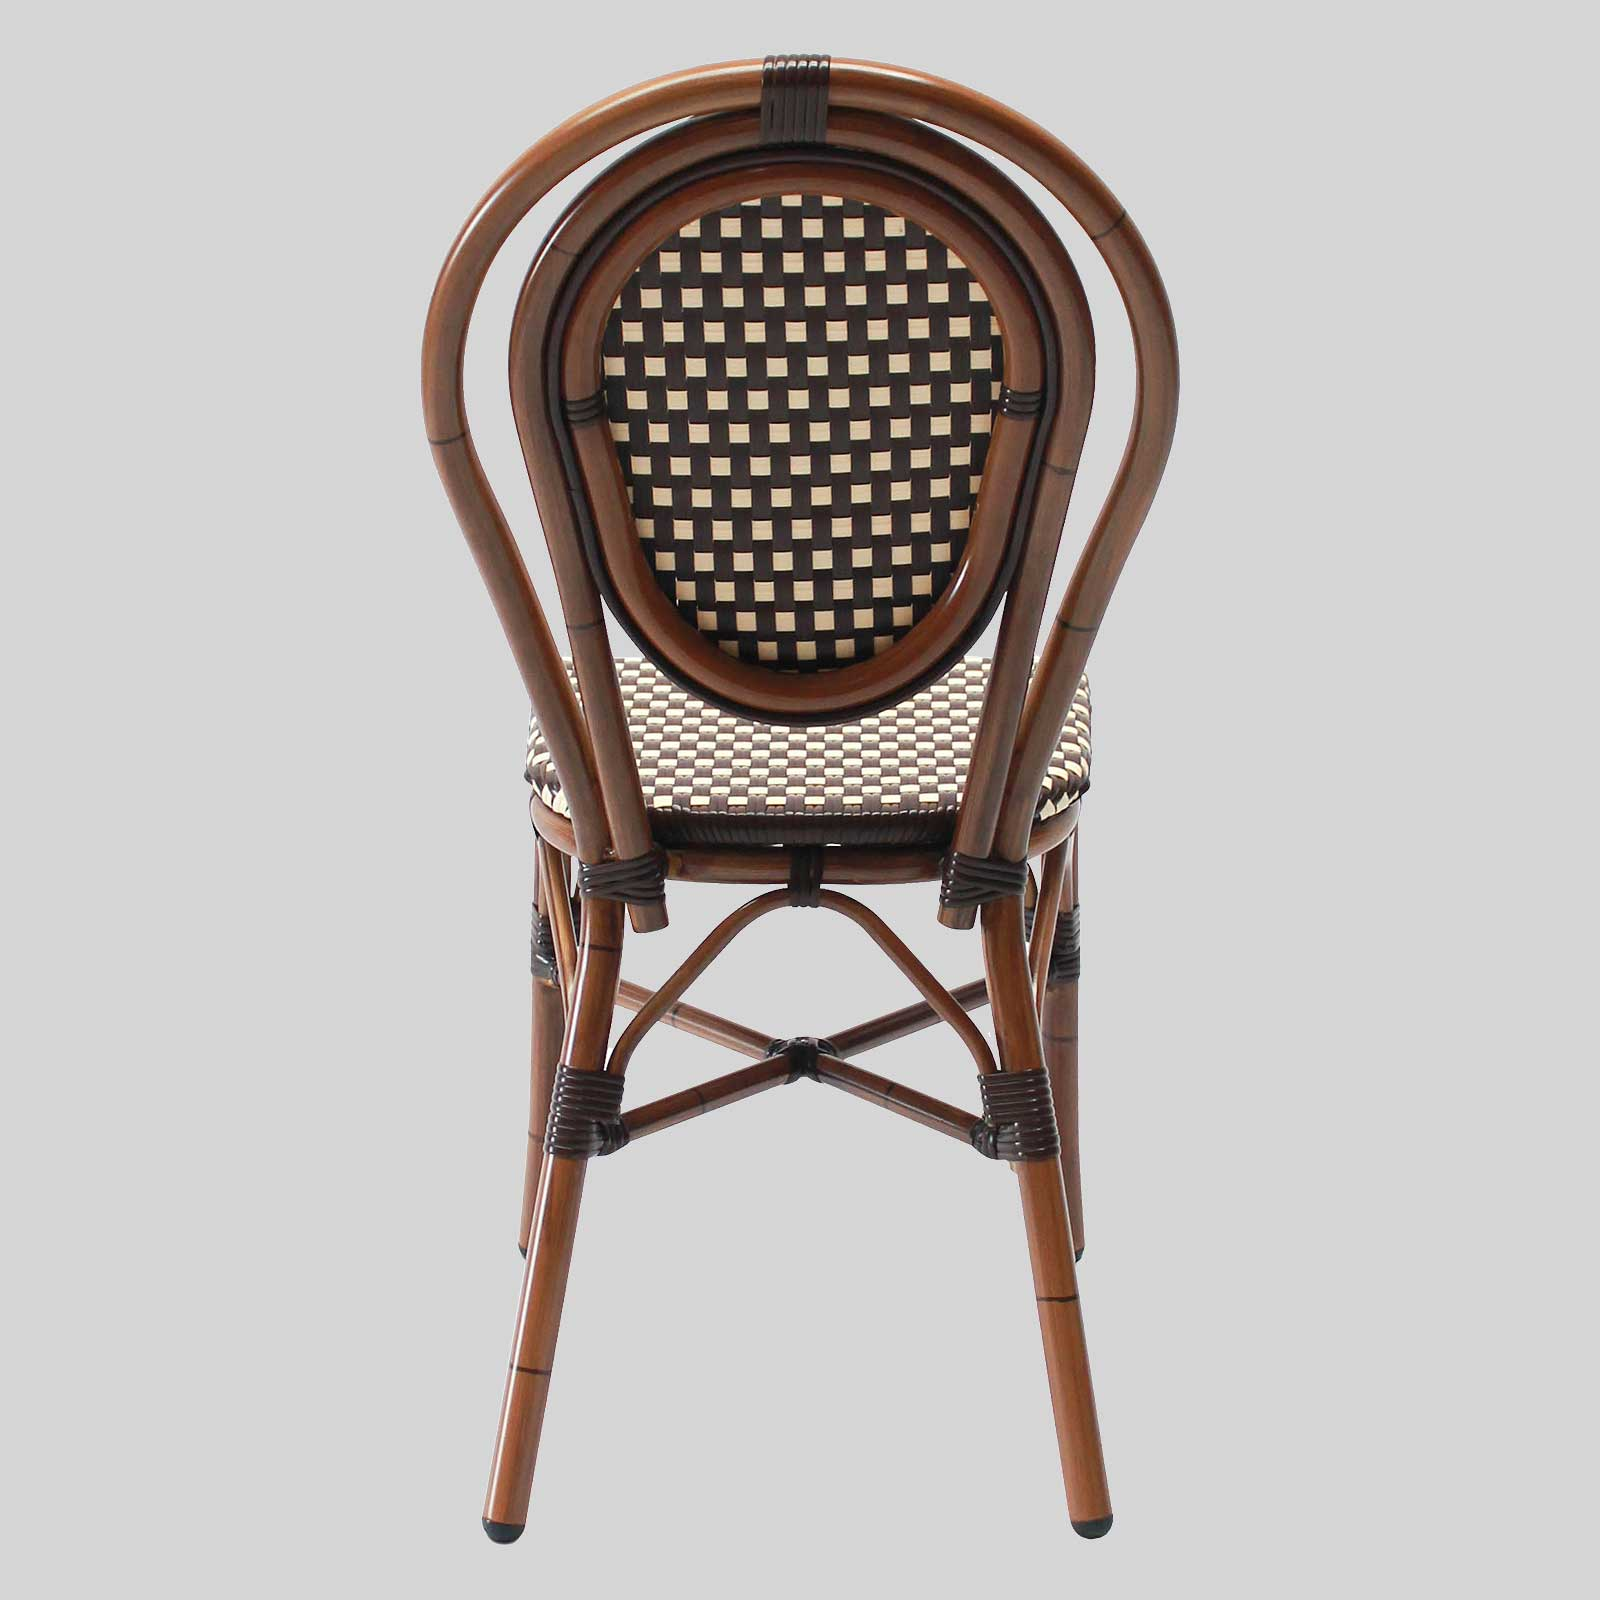 French Cafe Chairs for Hospitality Palace